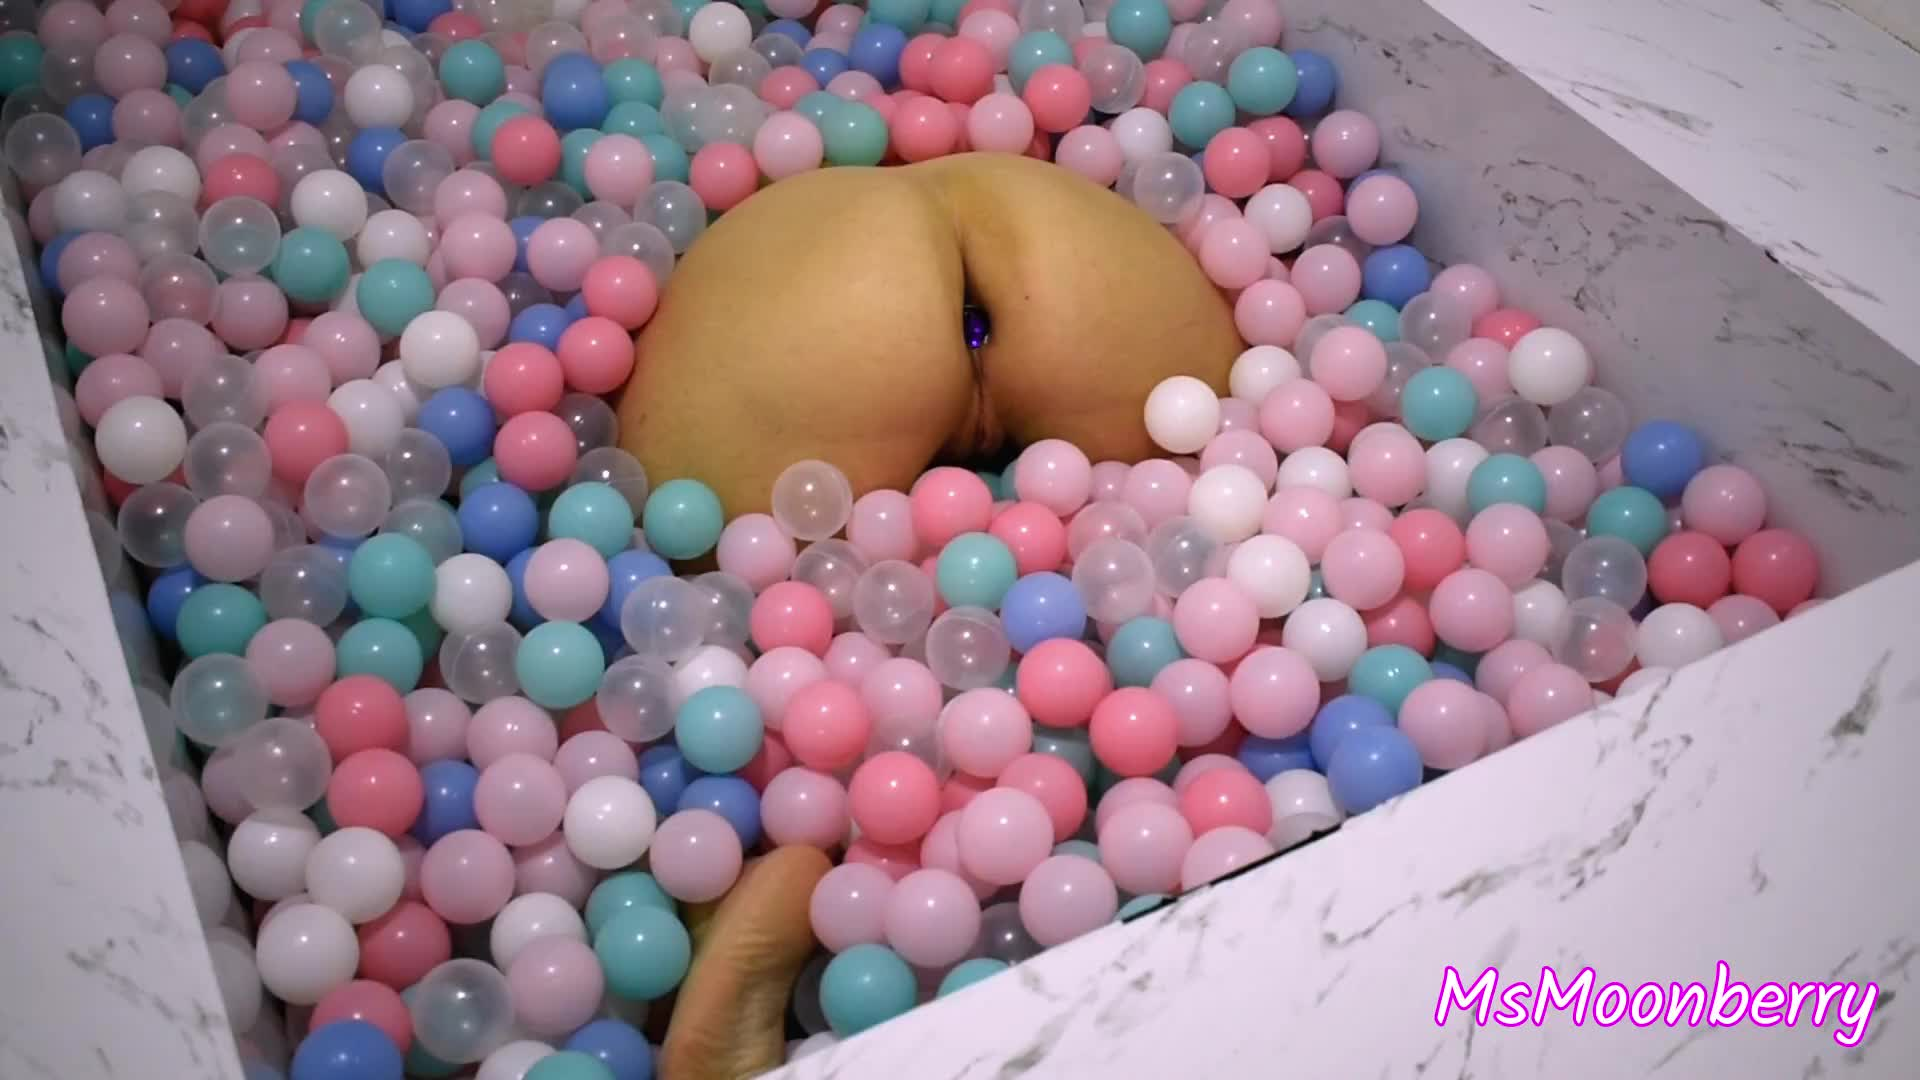 Bubble butt in the ball pit